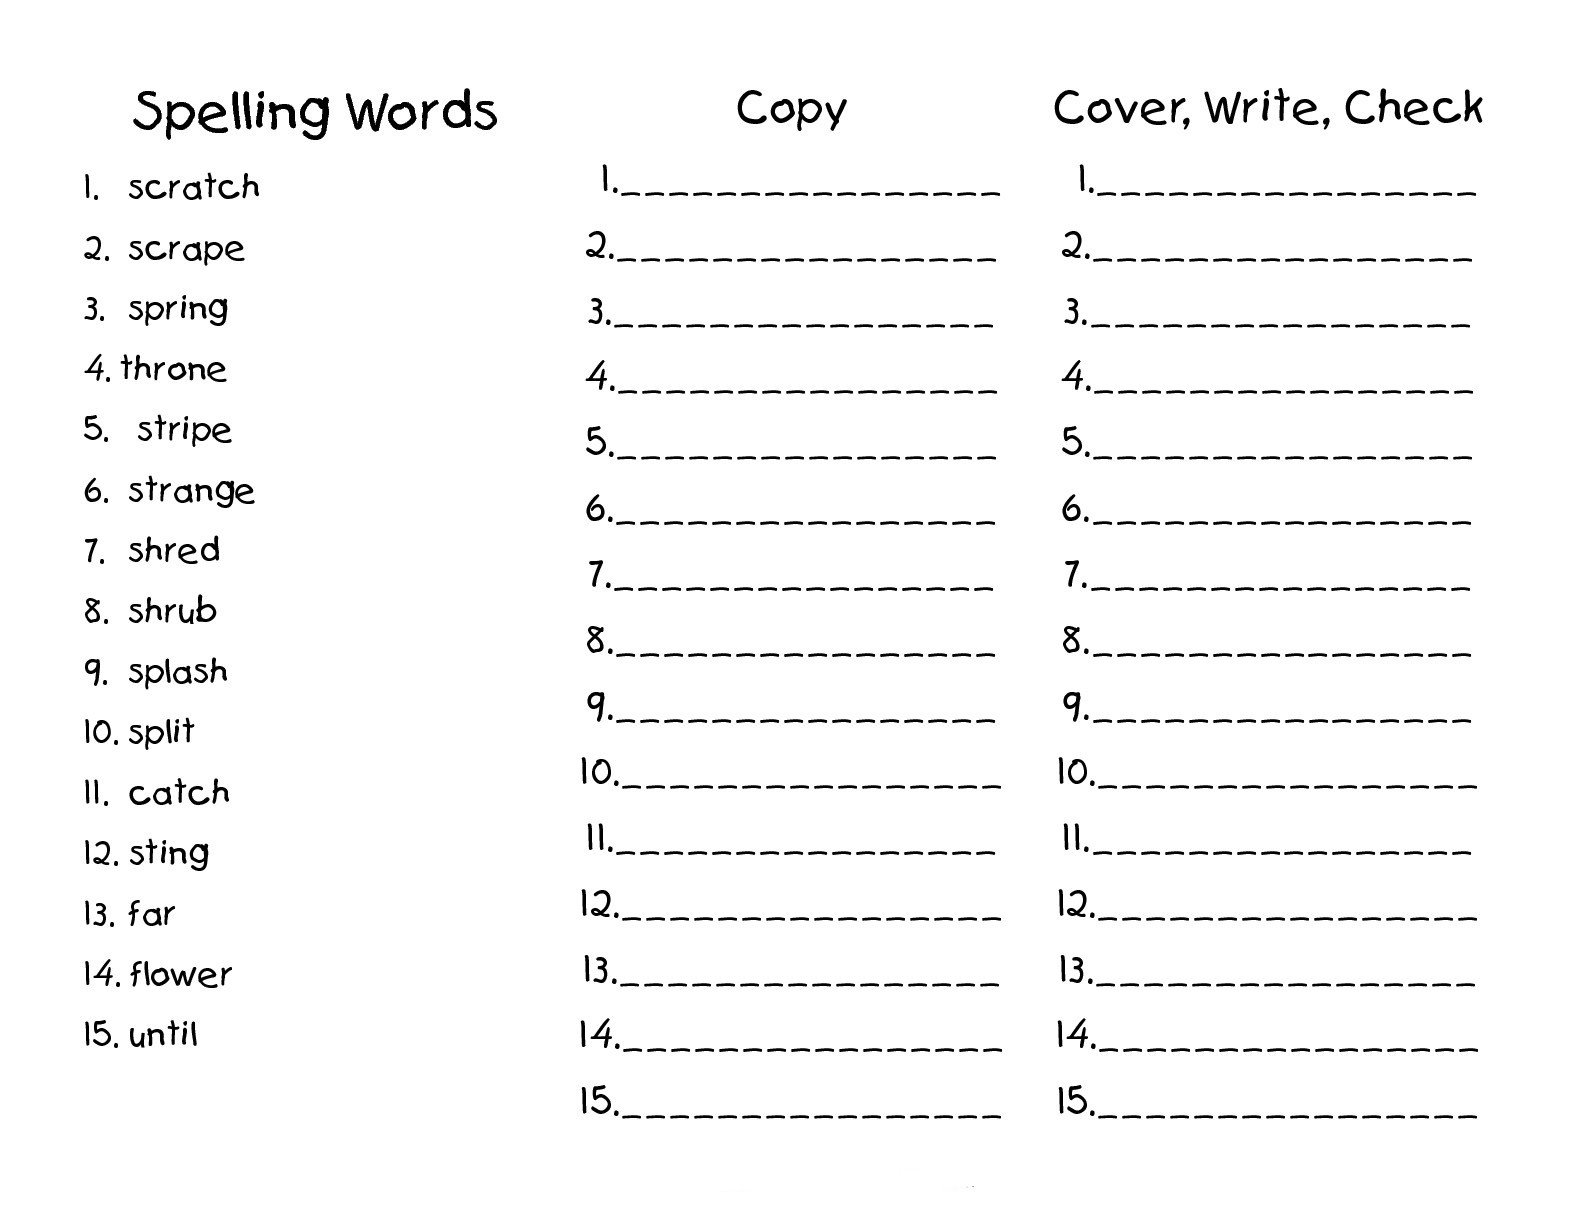 Blank Spelling Practice Worksheets 2nd Grade Spelling Worksheets Best Coloring Pages for Kids